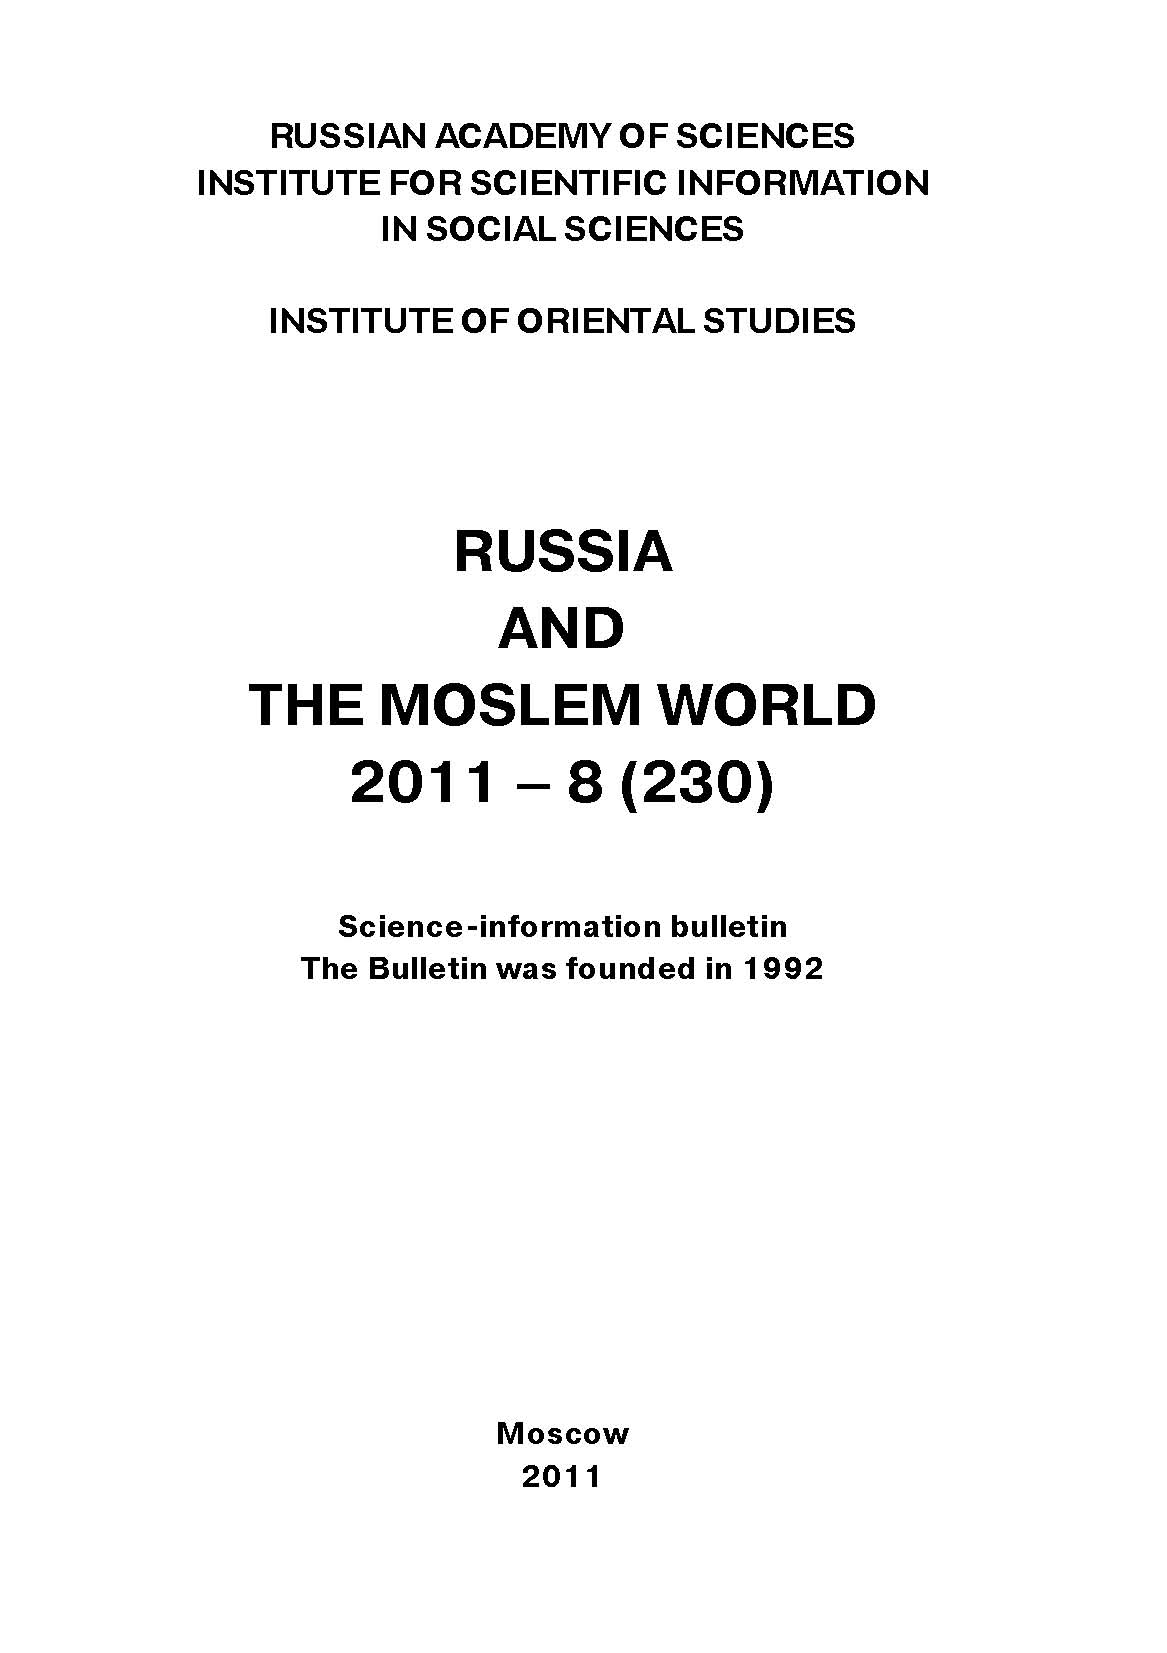 Сборник статей Russia and the Moslem World № 08 / 2011 сборник статей russia and the moslem world 04 2011